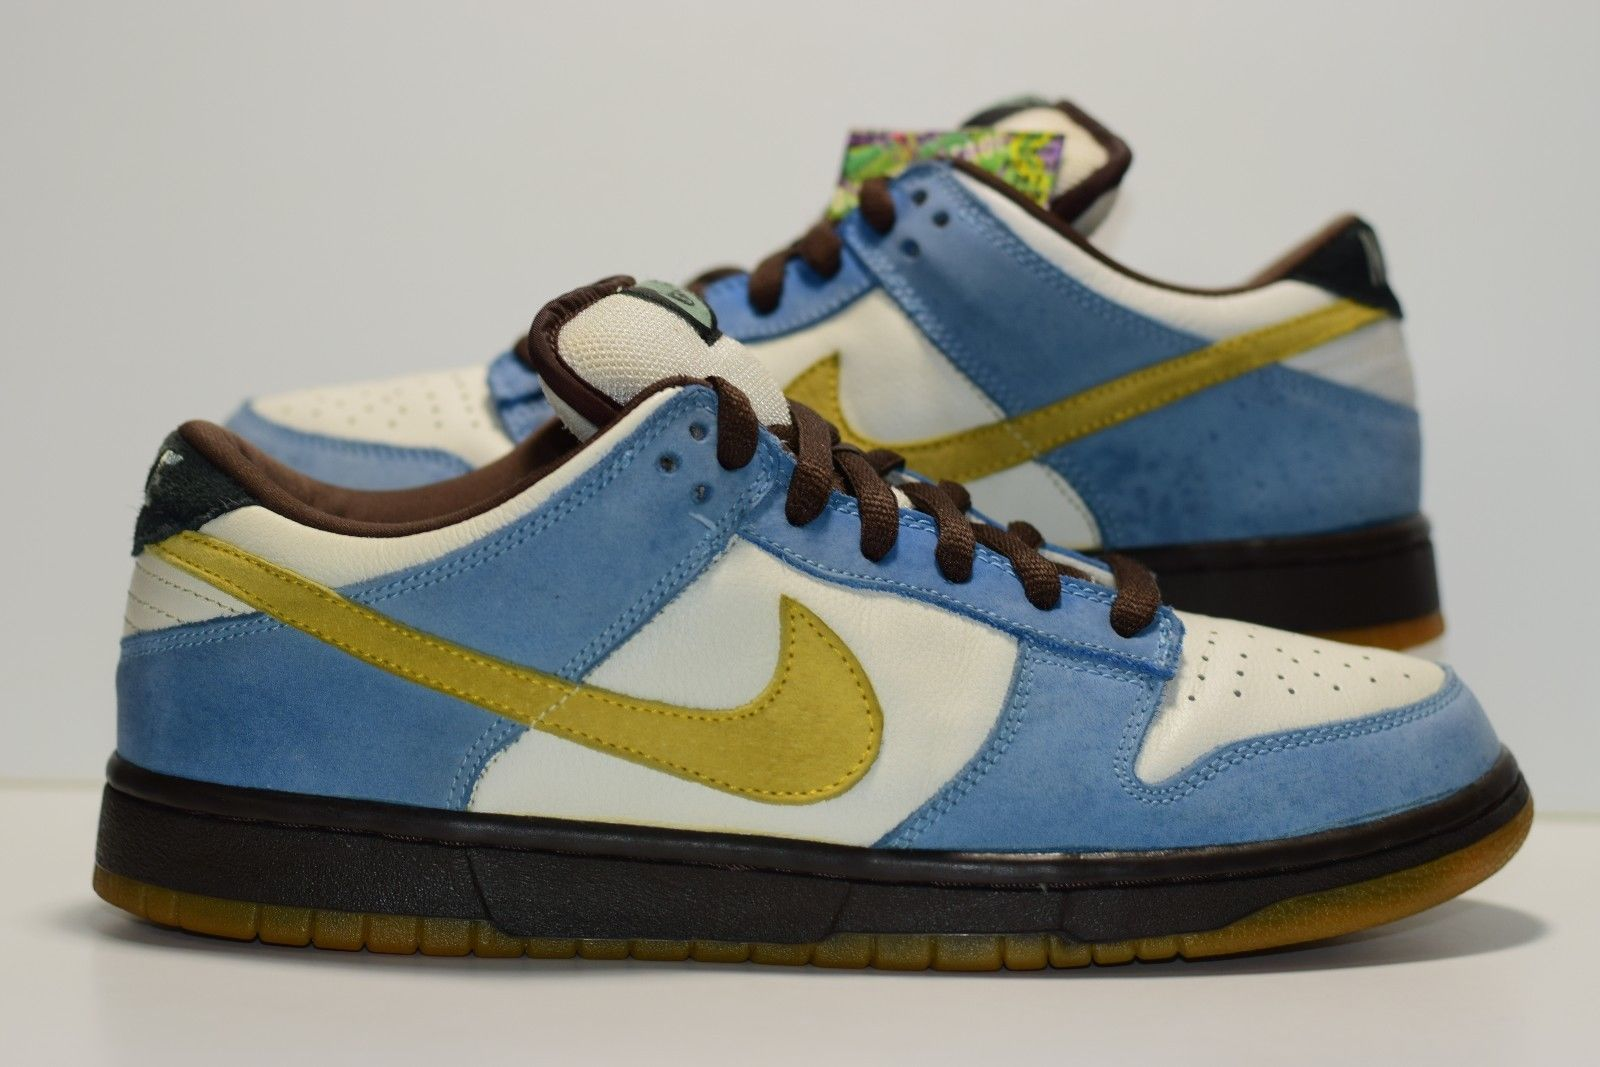 brand new eec15 13fe8 Size 10  2004 Nike Dunk Low Pro SB HOMER Authentic 304292-173 - Thumbnail  ...